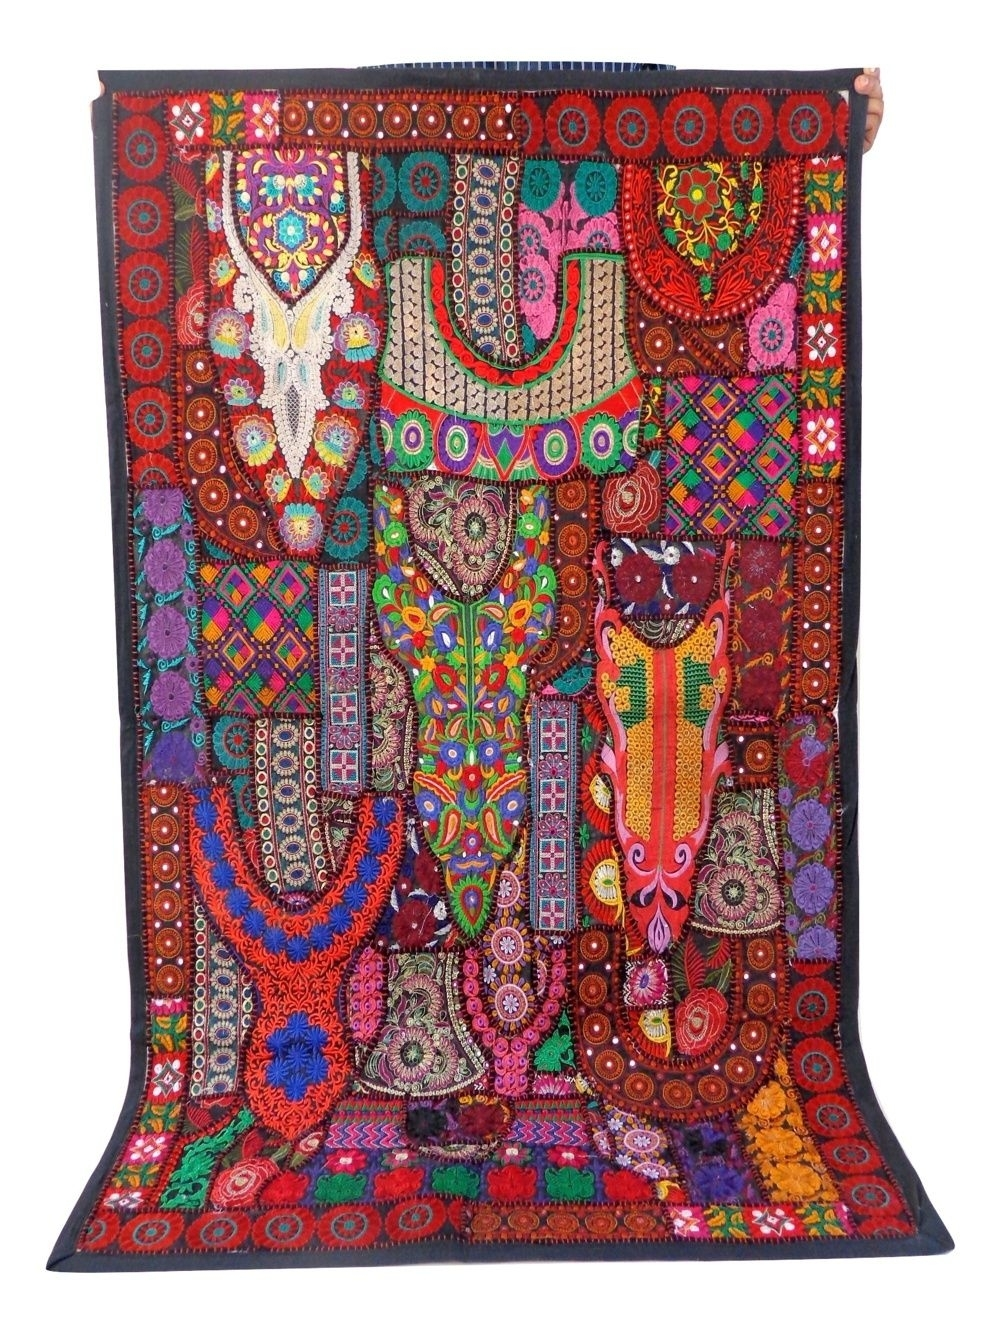 Designer Vintage Embroidered Patchwork Tapestry – Boho Hippie Wall Regarding Most Current Indian Fabric Wall Art (Gallery 3 of 15)